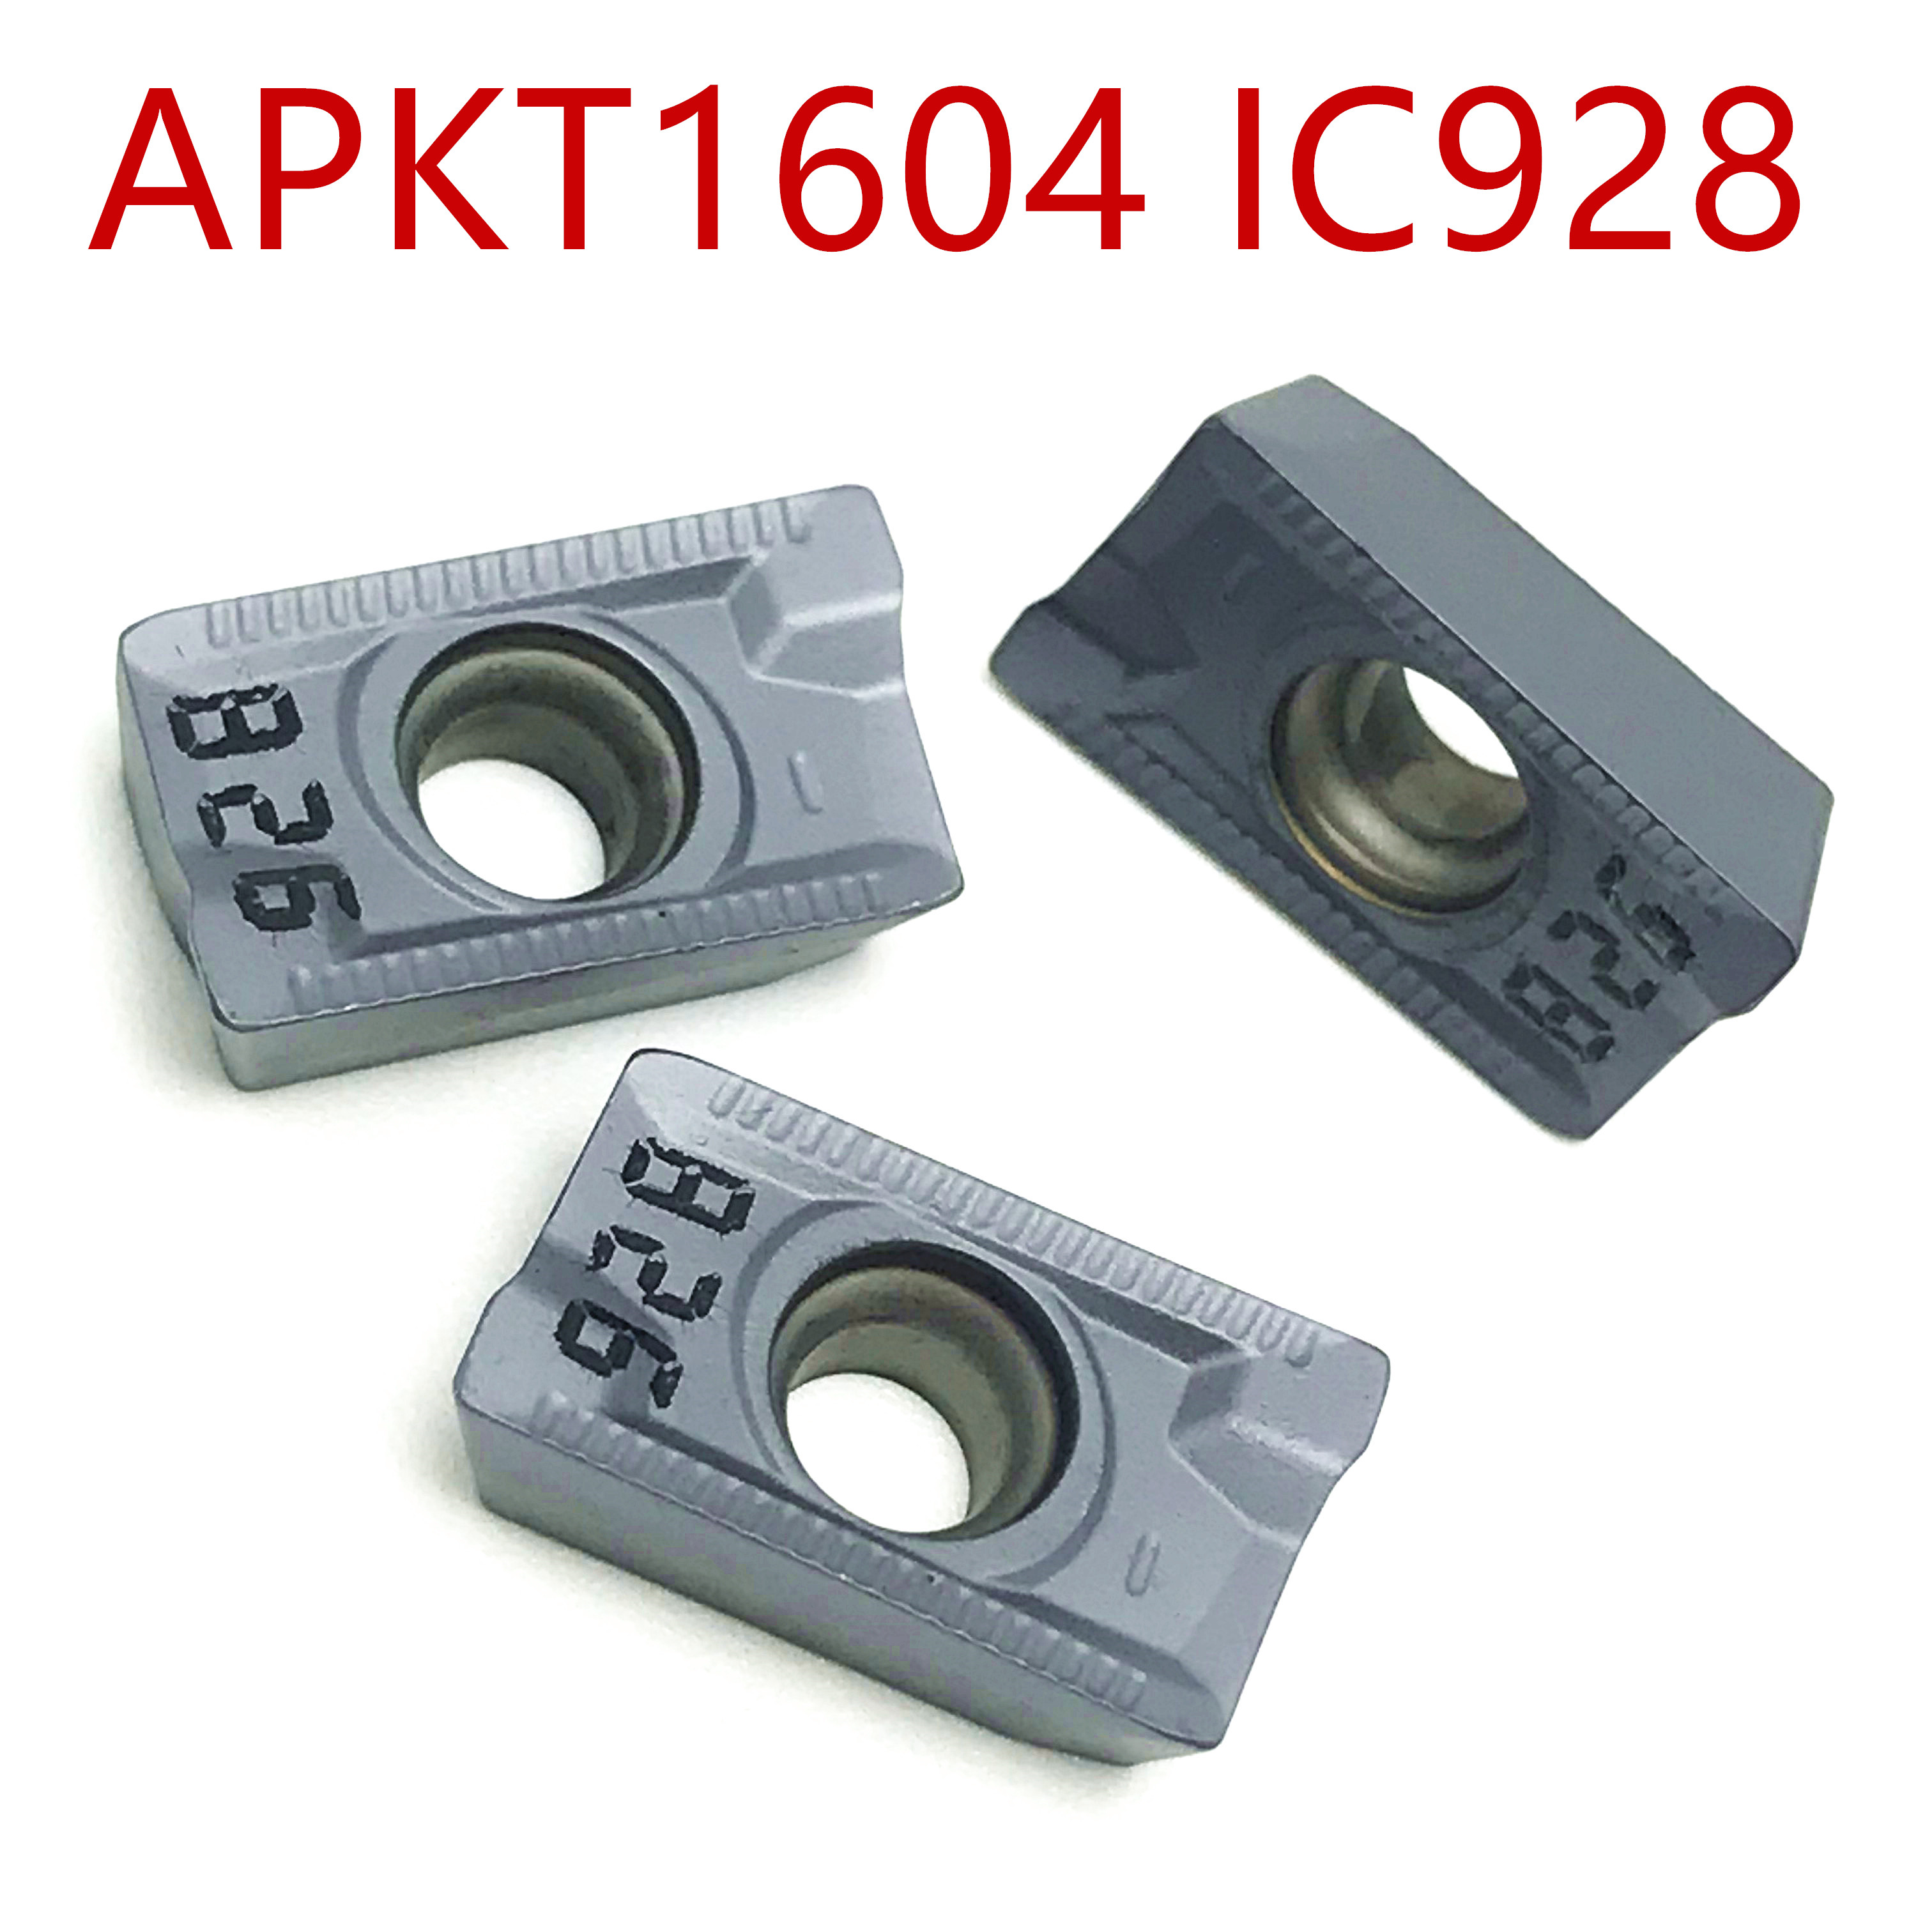 10pcs APKT1604PDR-76 IC928  Carbide Inserts Durable Blades CNC Turning Tools CNC